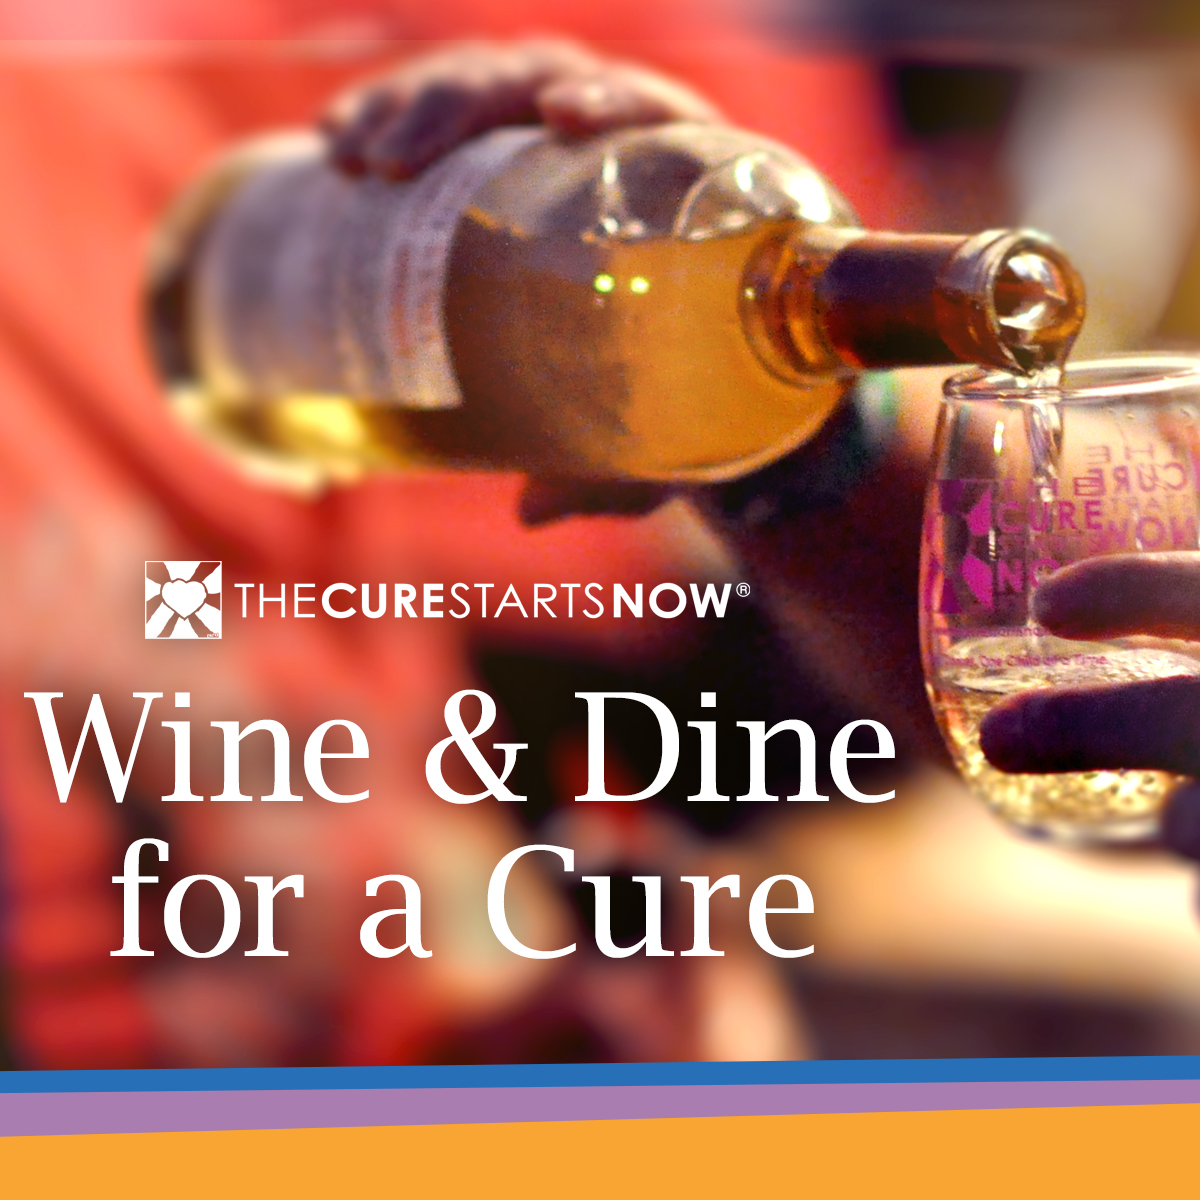 Arkansas Wine & Dine for a Cure